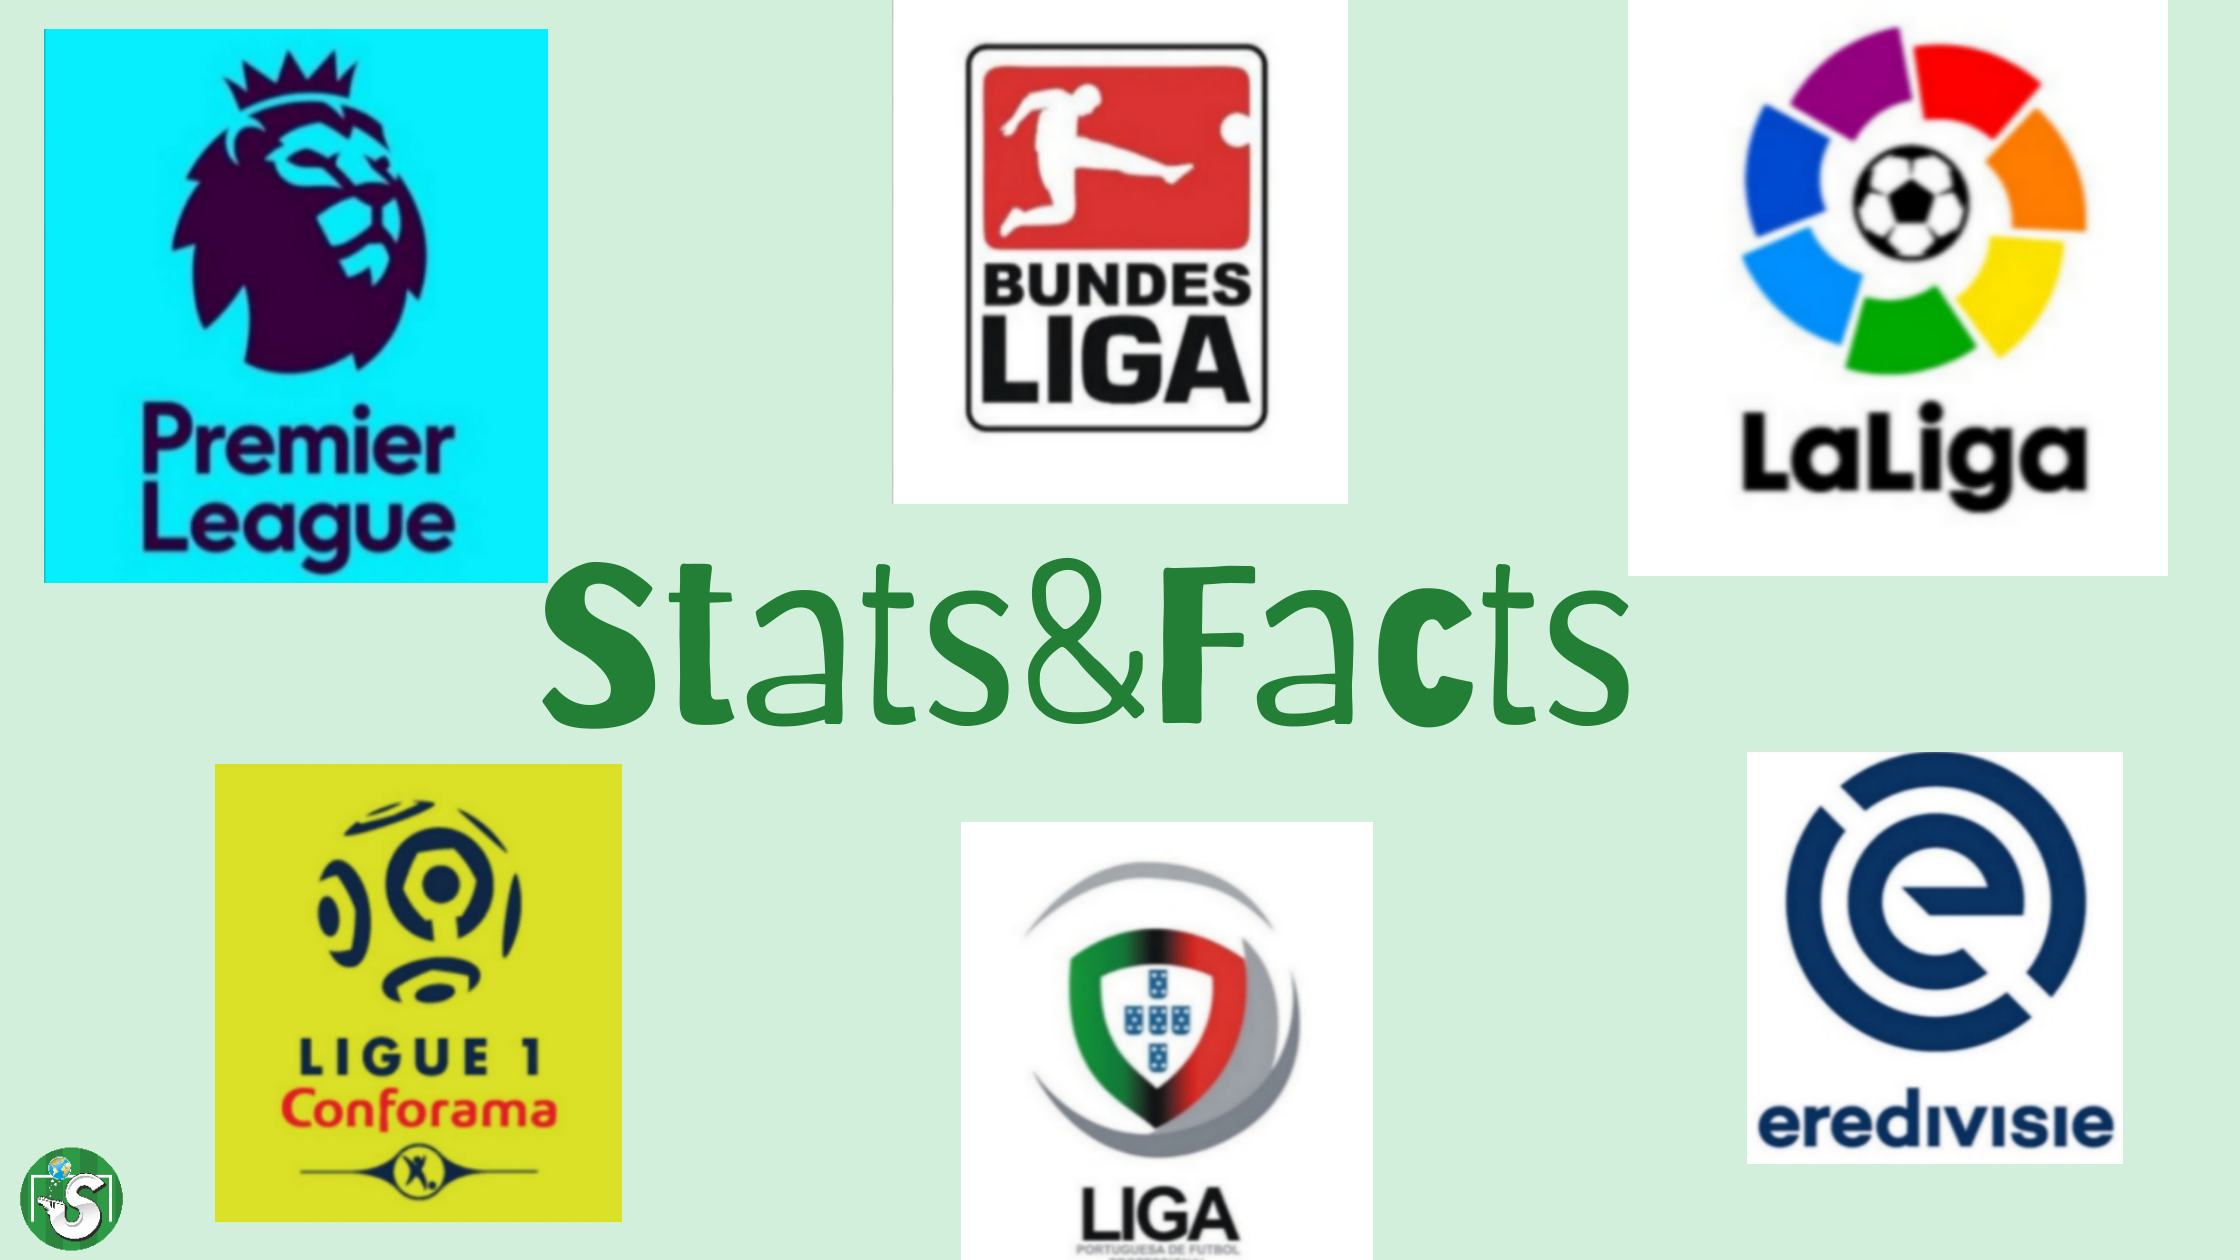 Stats & Facts